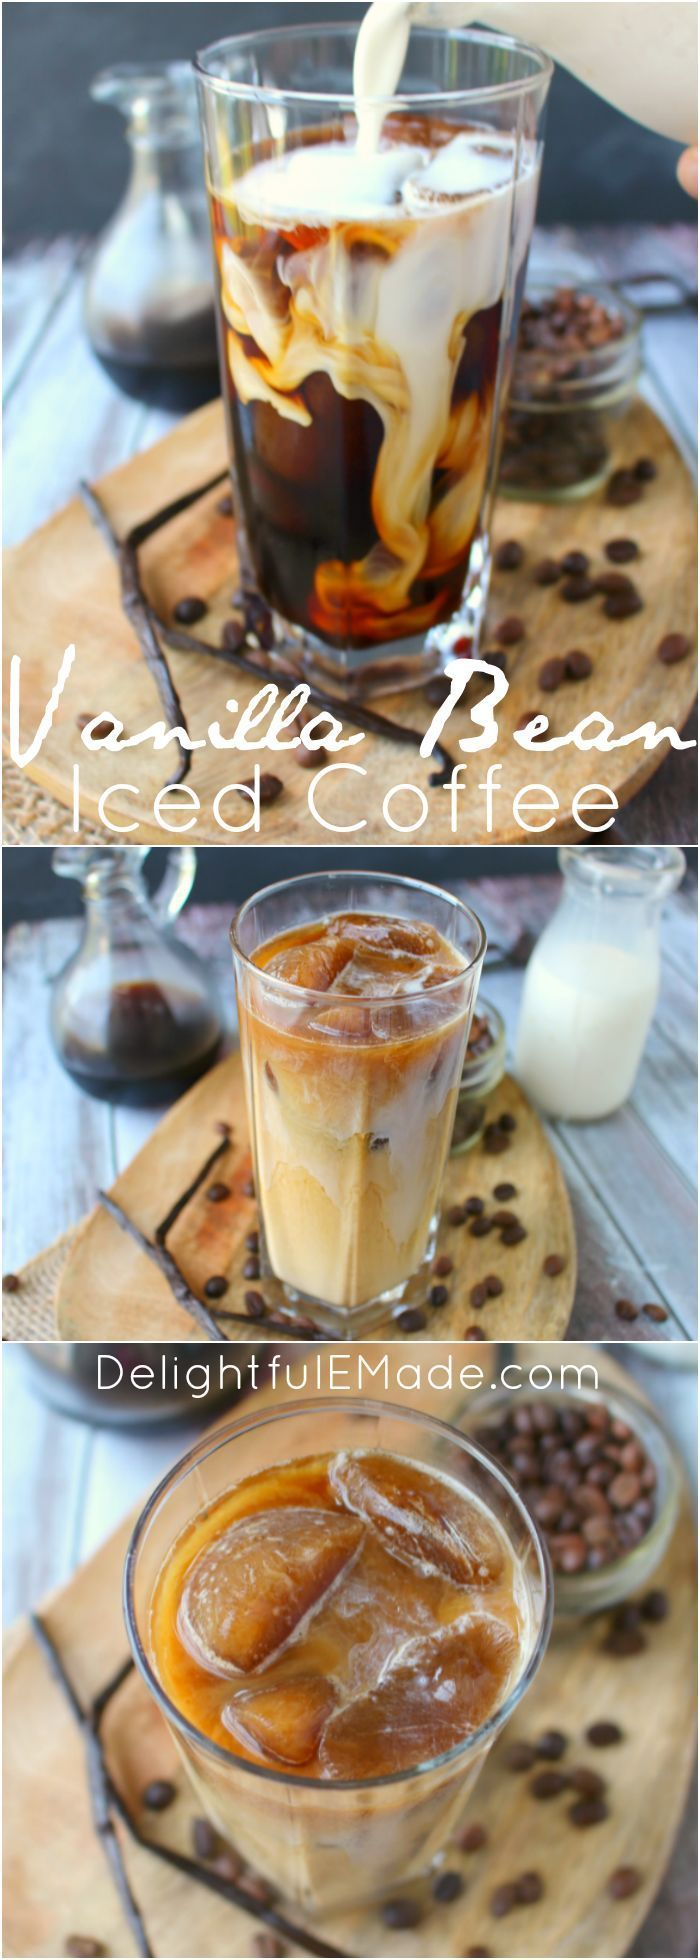 Add coffee ice cubes of chilled coffee to flavored syrup Add coffee ice cubes of chilled coffee to flavored syrup